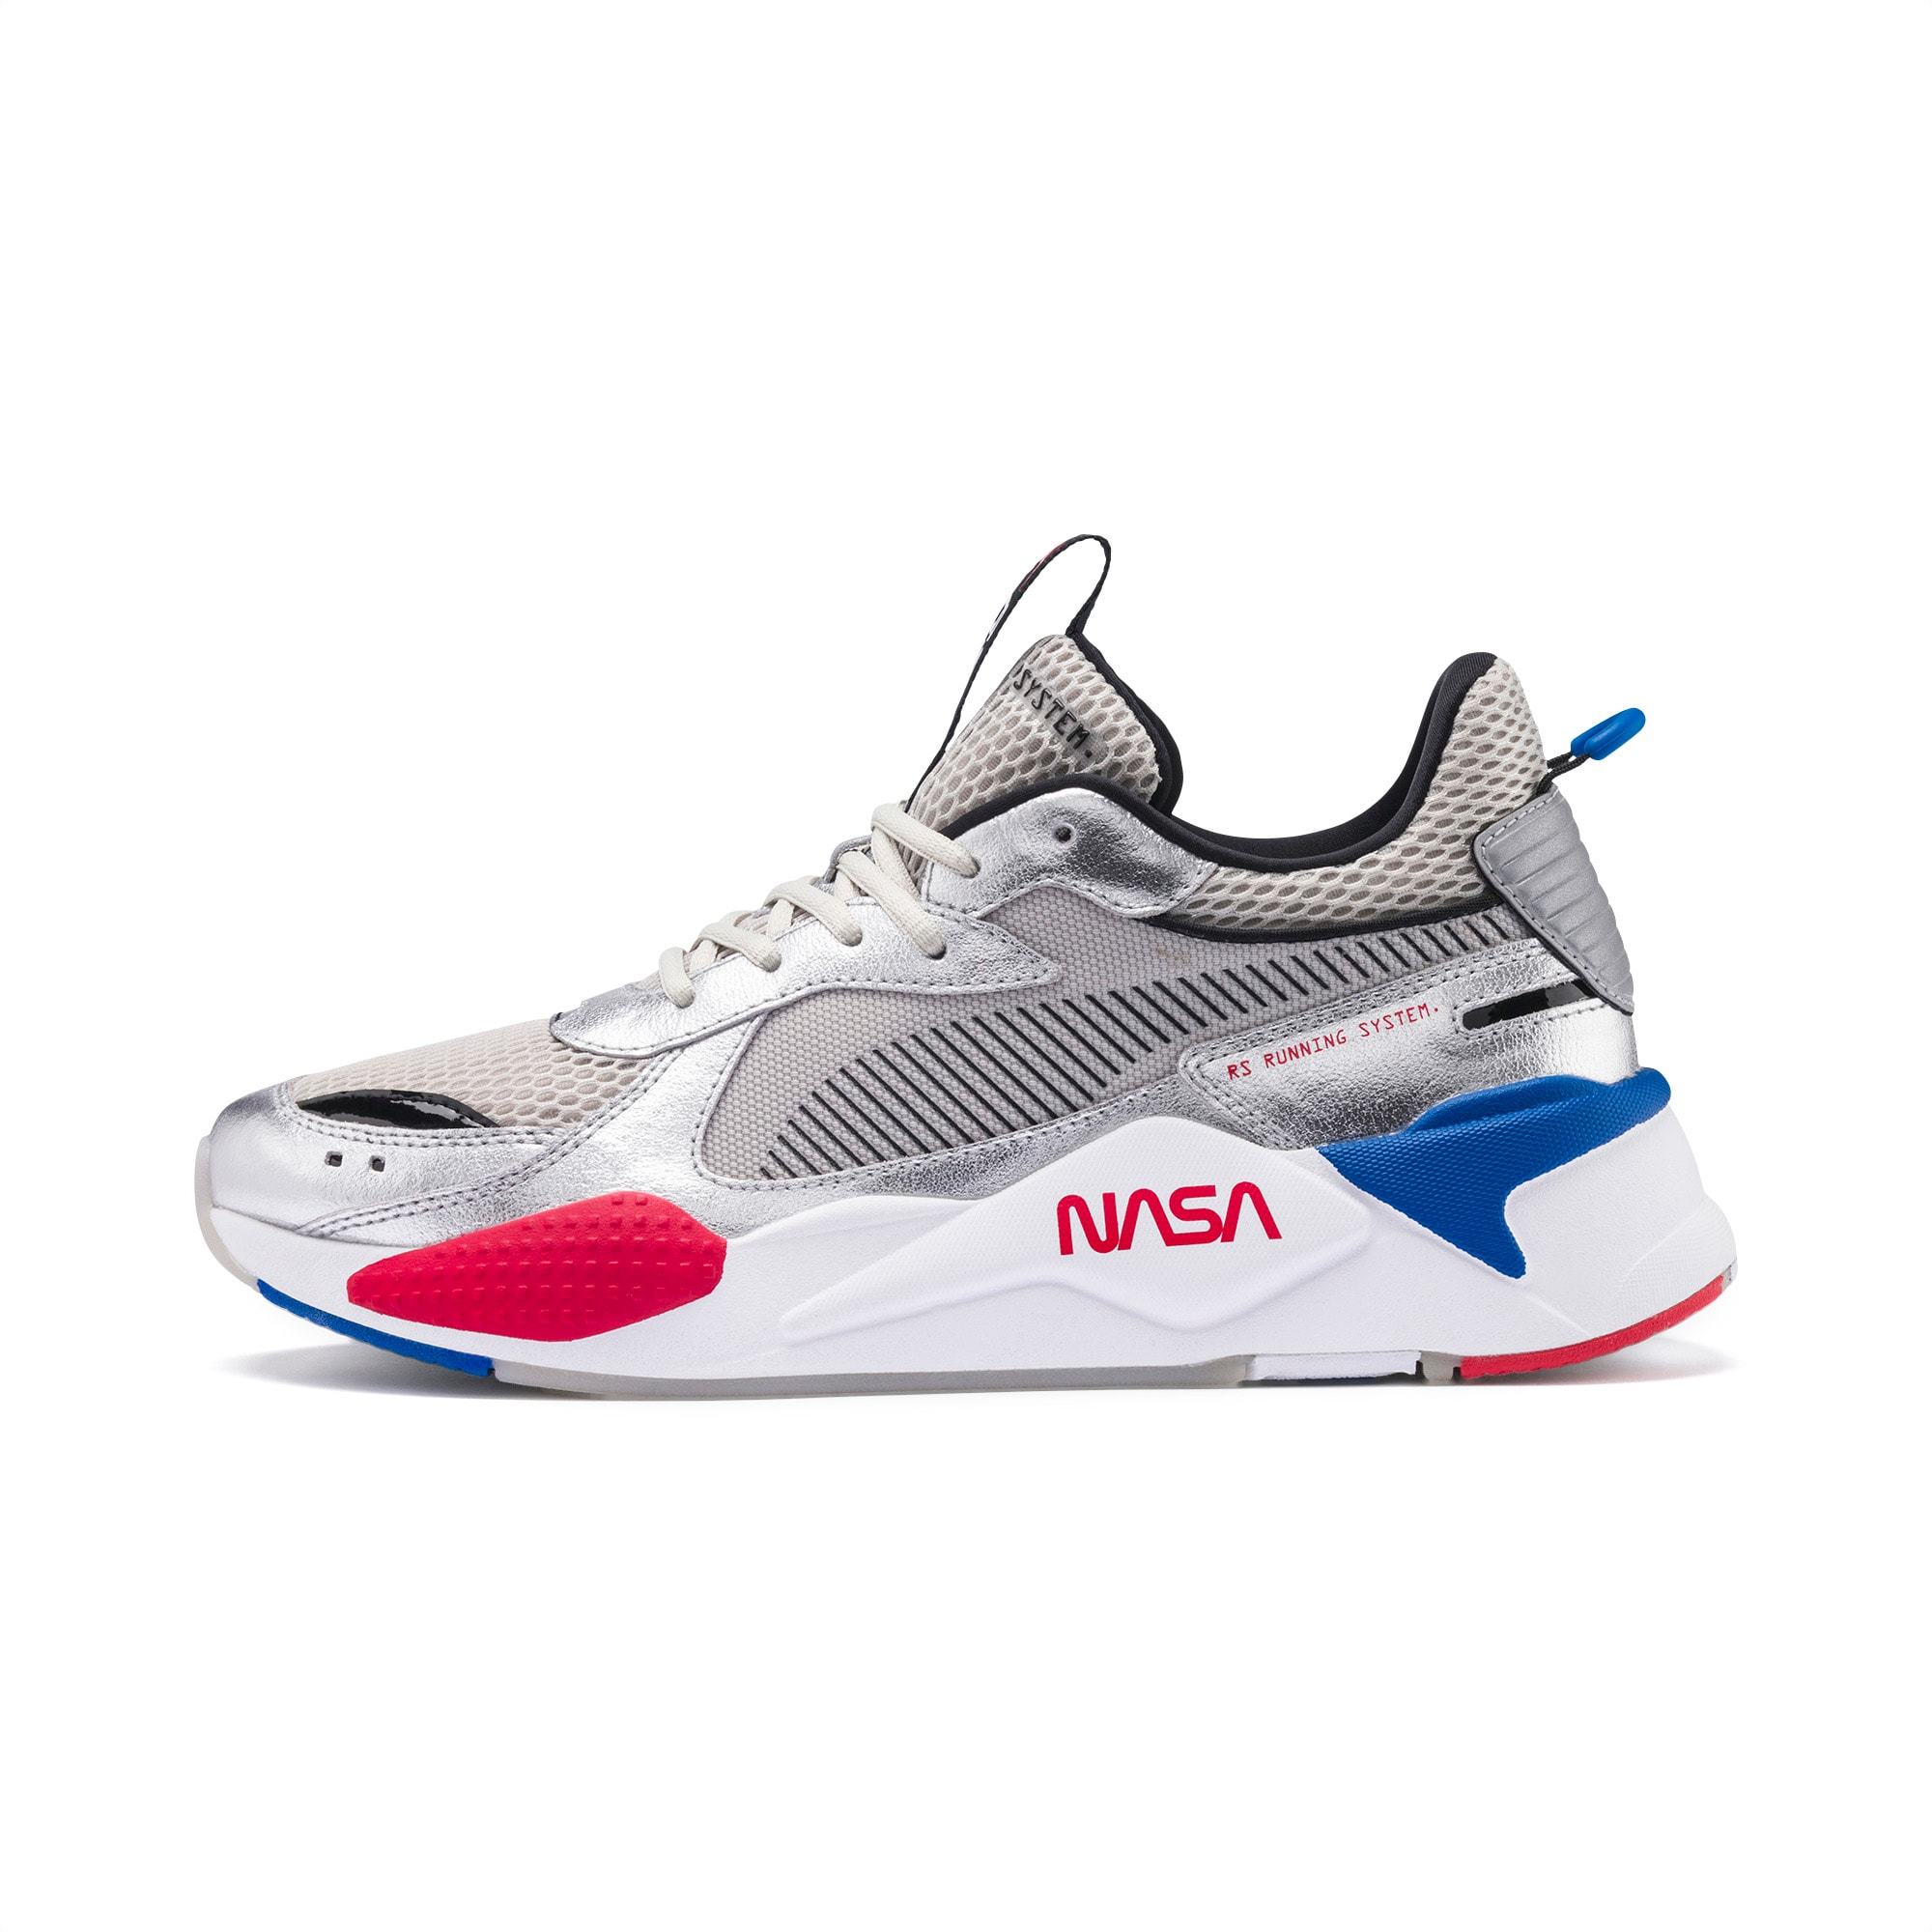 RS-X Space Explorer Trainers, Puma Silver-Gray Violet, large-SEA